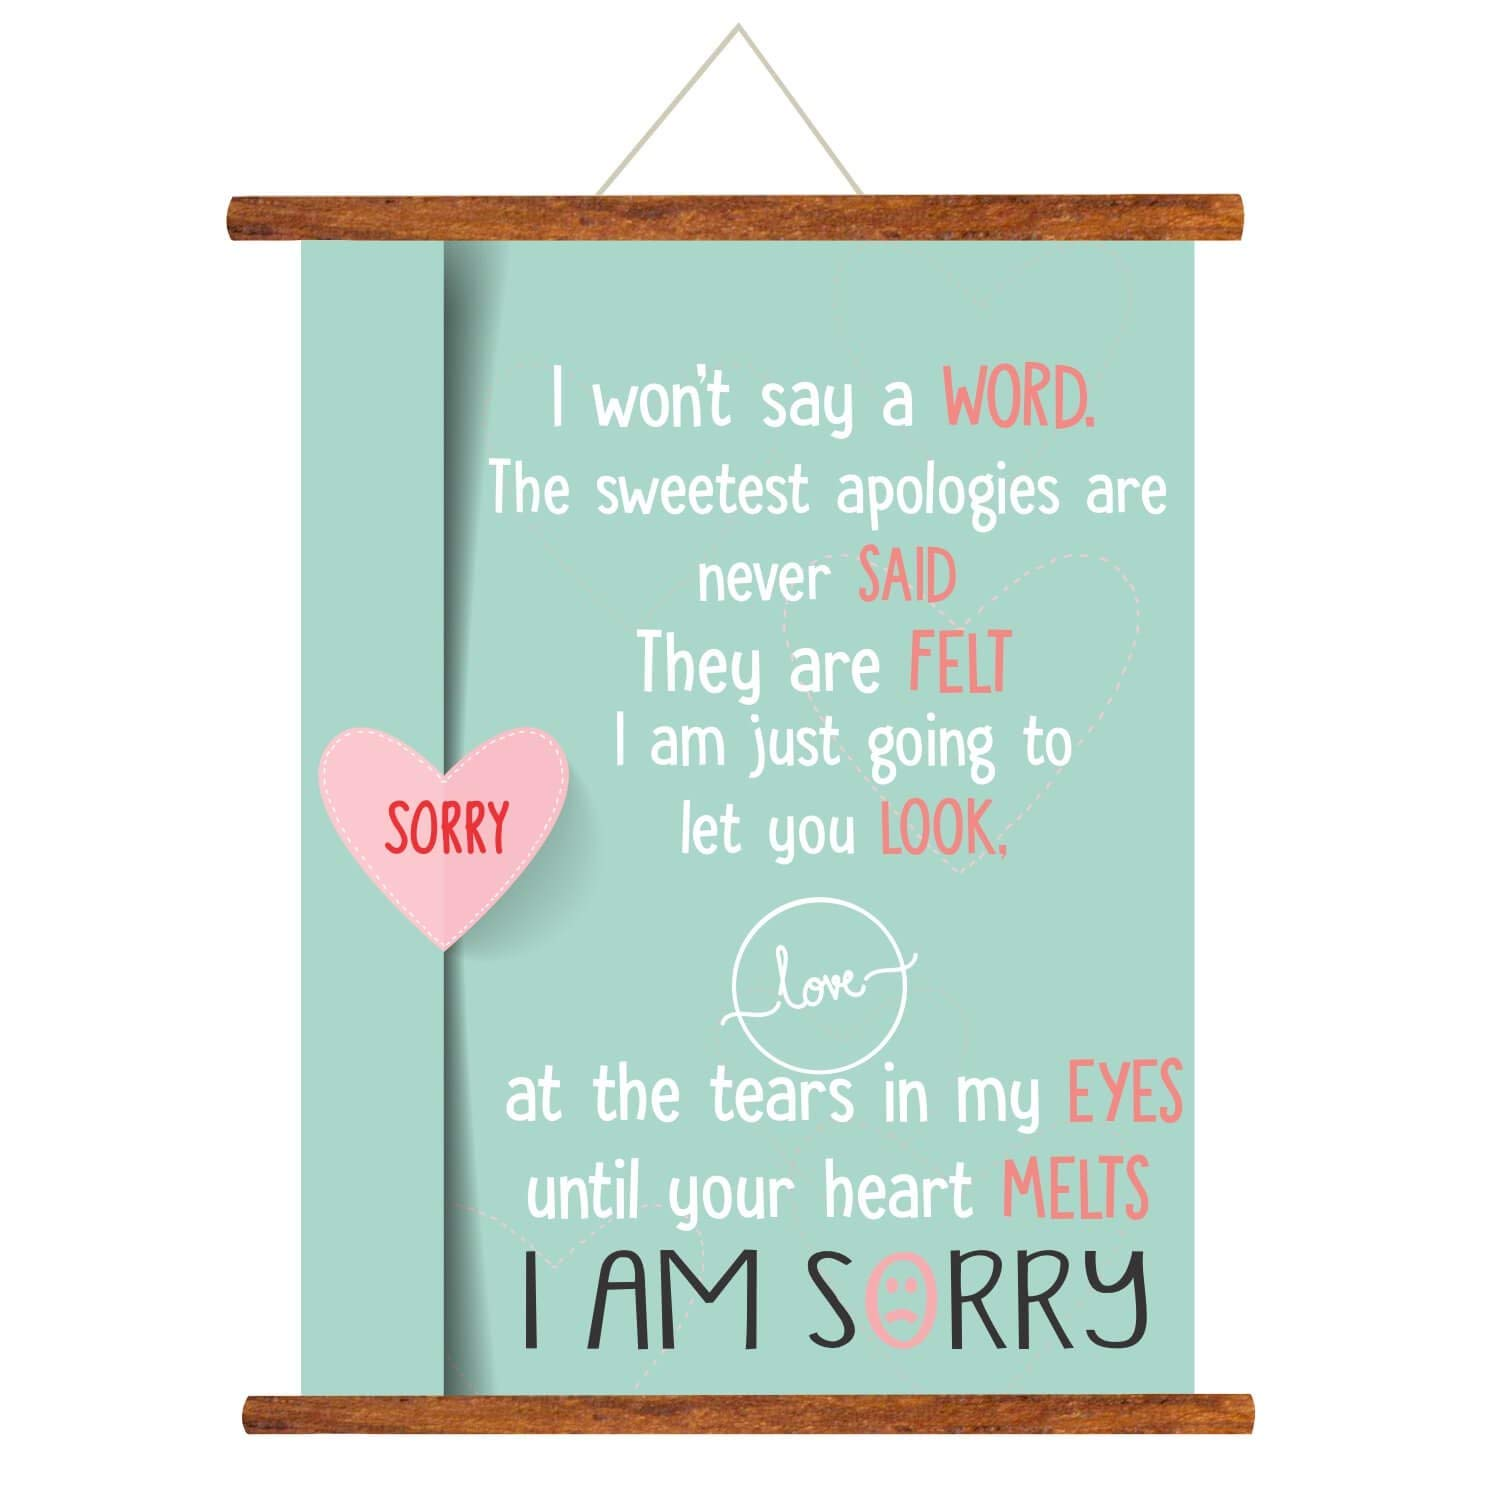 Say words boyfriend your to to sorry Words of